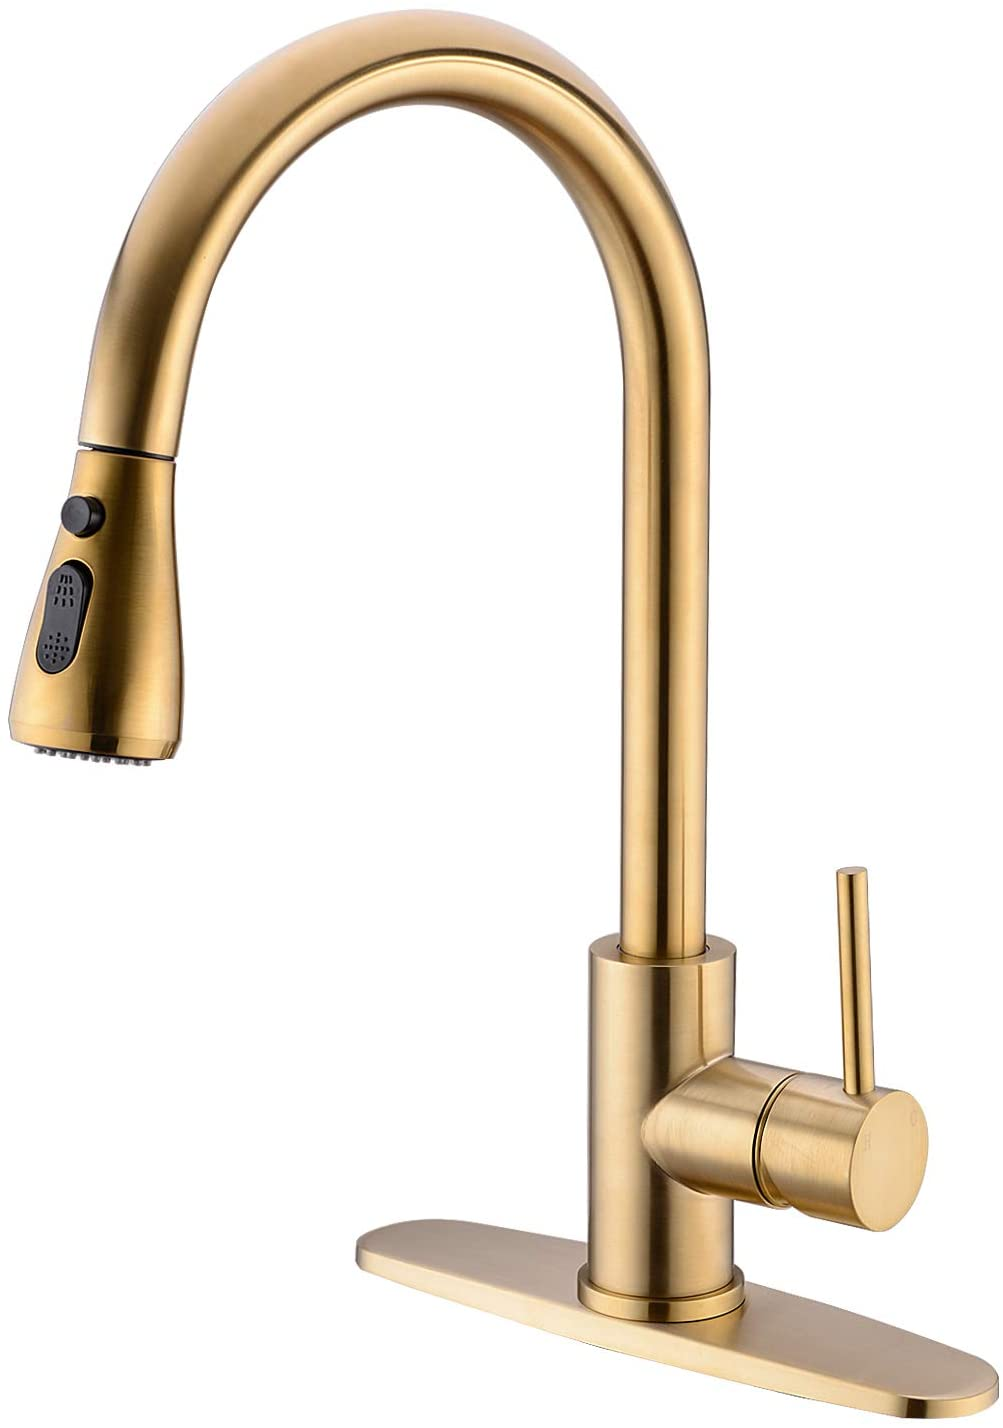 Trustmi Single Handle Kitchen Faucet With Pull Down Sprayer Head Brushed Brass Pull Out Bar Sink Faucet 360 Degree Swivel Spout With 3 Setting Sprayer And 10 Inch Deck Plate Brushed Gold Amazon Com